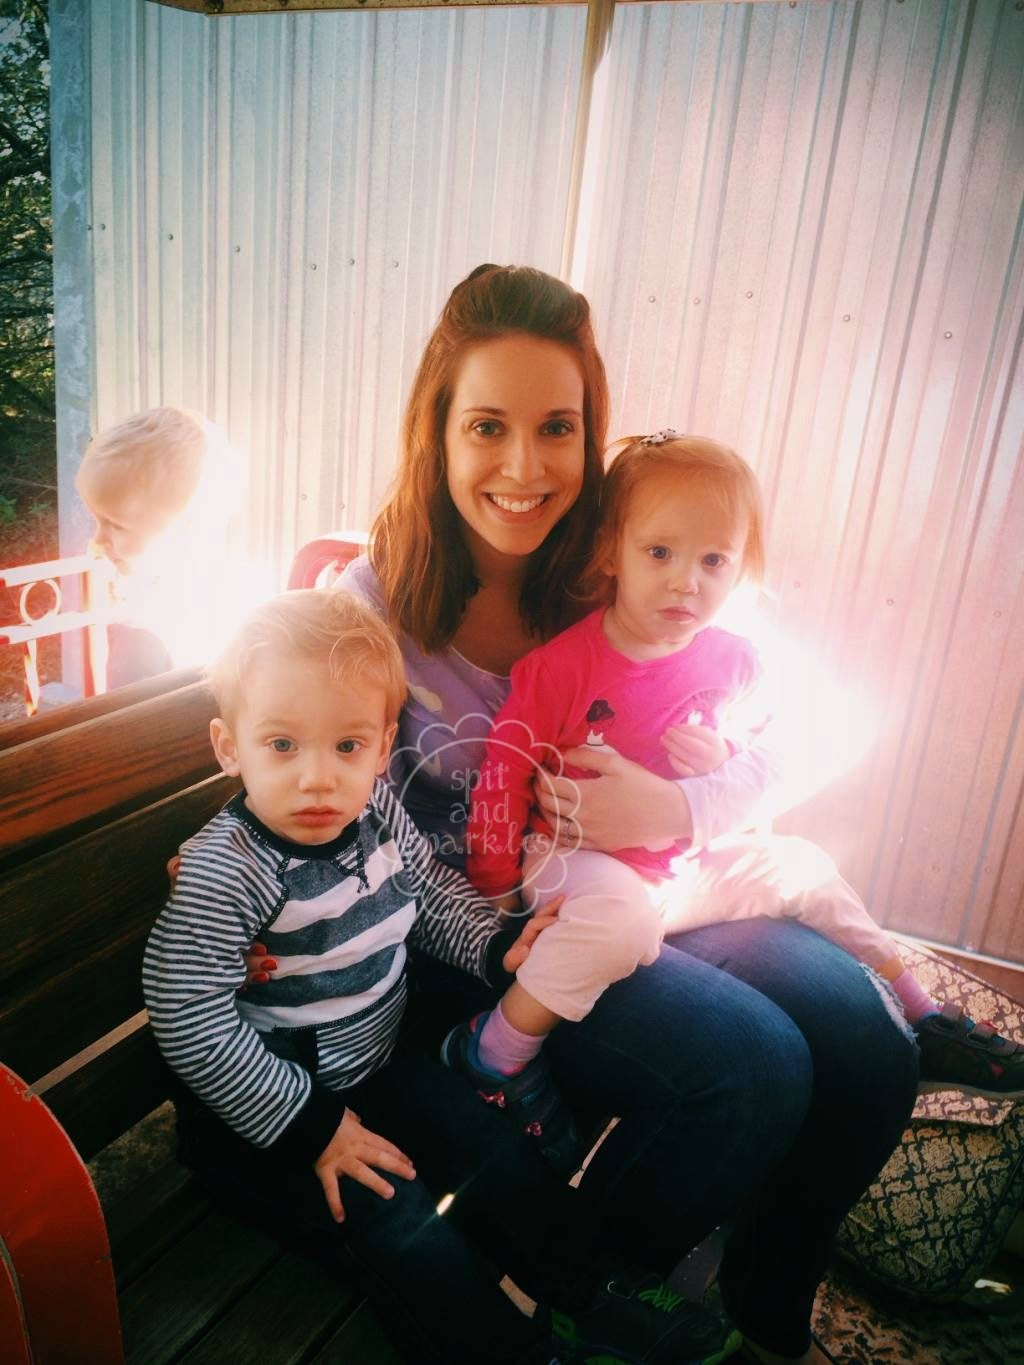 Spit and Sparkles: Mommy burnout is for REAL! How I coped. #twins #parenting #sahm #momprobs